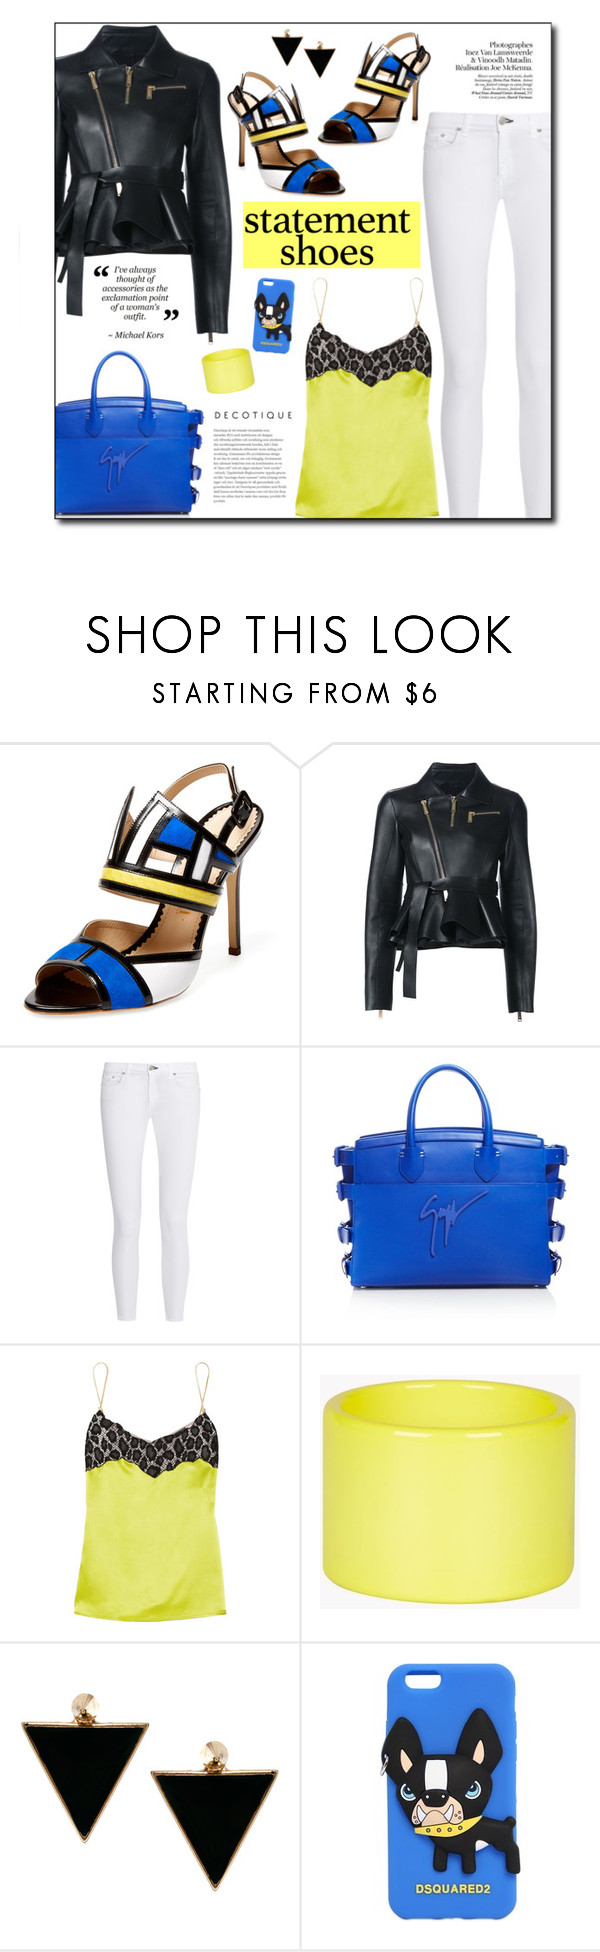 """""""#815 - Double Take: Statement Shoes"""" by lilmissmegan ❤ liked on Polyvore featuring Aperlaï, Dsquared2, rag & bone, Giuseppe Zanotti, Versace, ASOS and statementshoes"""